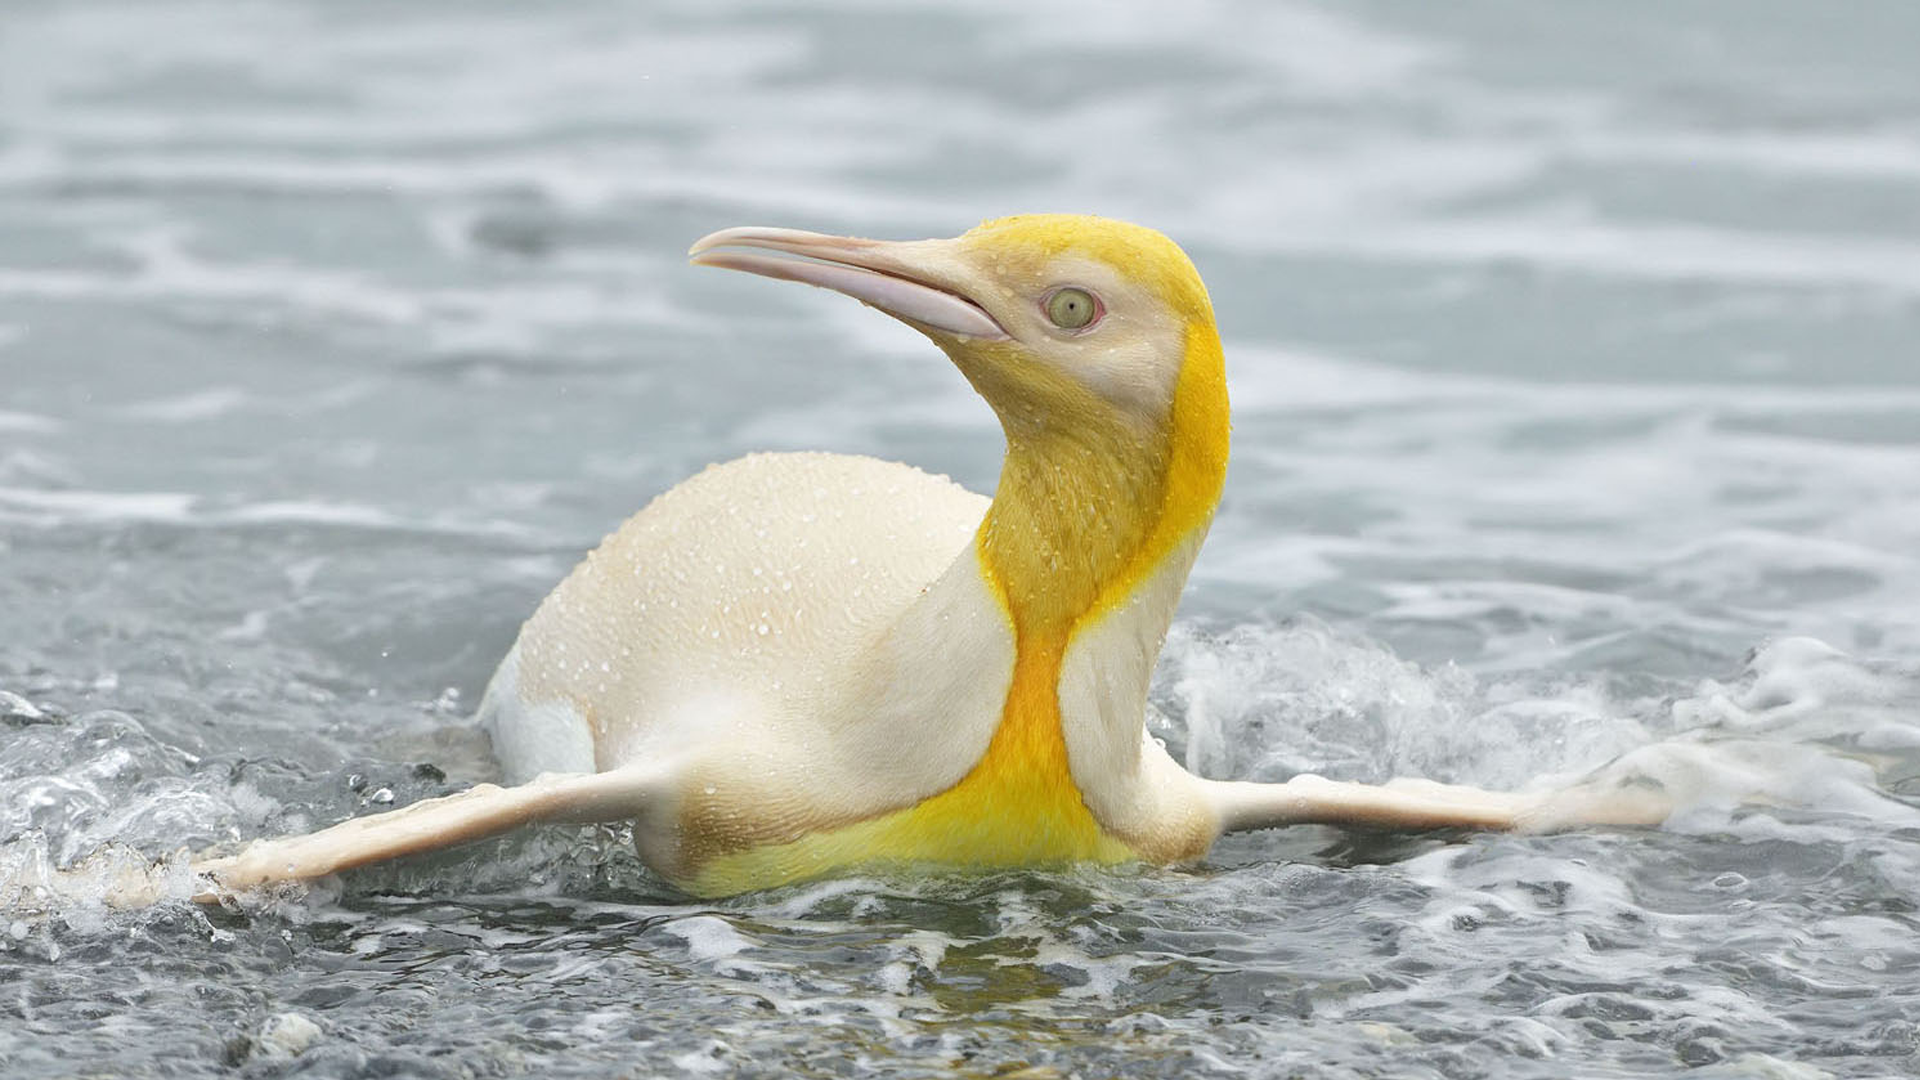 Check Out This Super Rare Yellow Penguin Captured by a Wildlife Photographer thumbnail